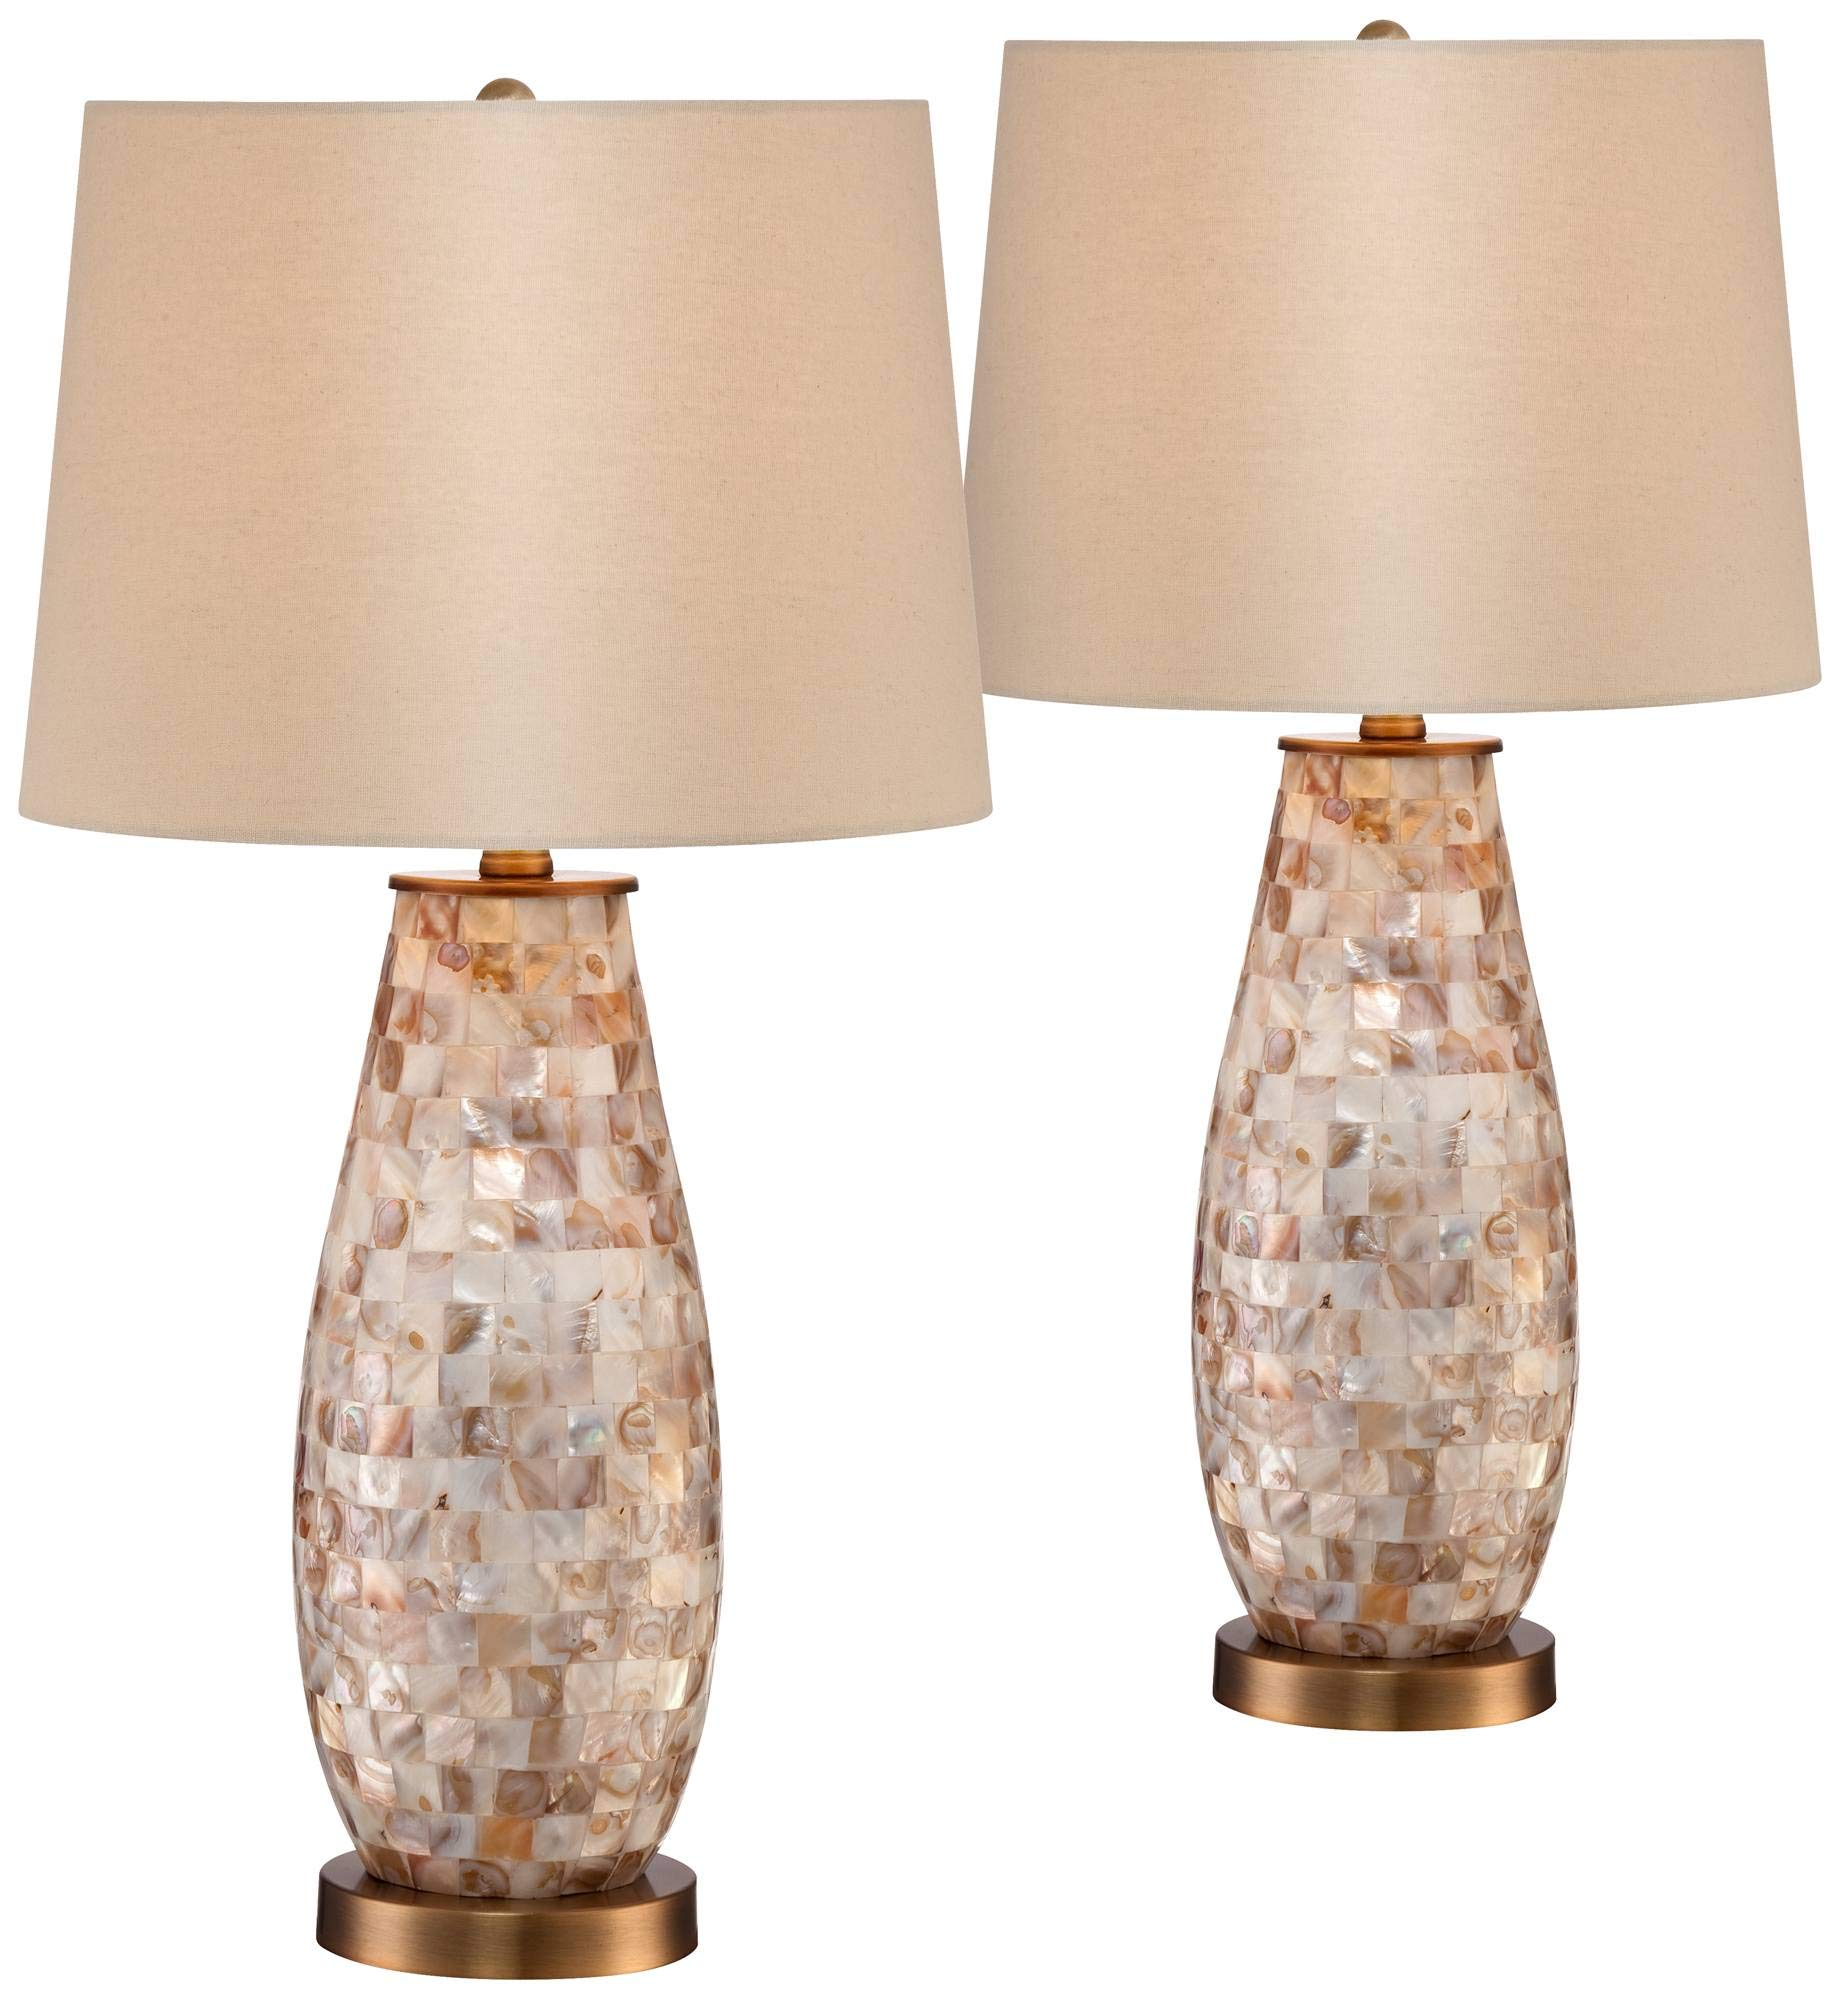 Kylie Cottage Table Lamps Set of 2 Mother of Pearl Tile Vase Beige Drum Shade for Living Room Family Bedroom Bedside Office - Regency Hill